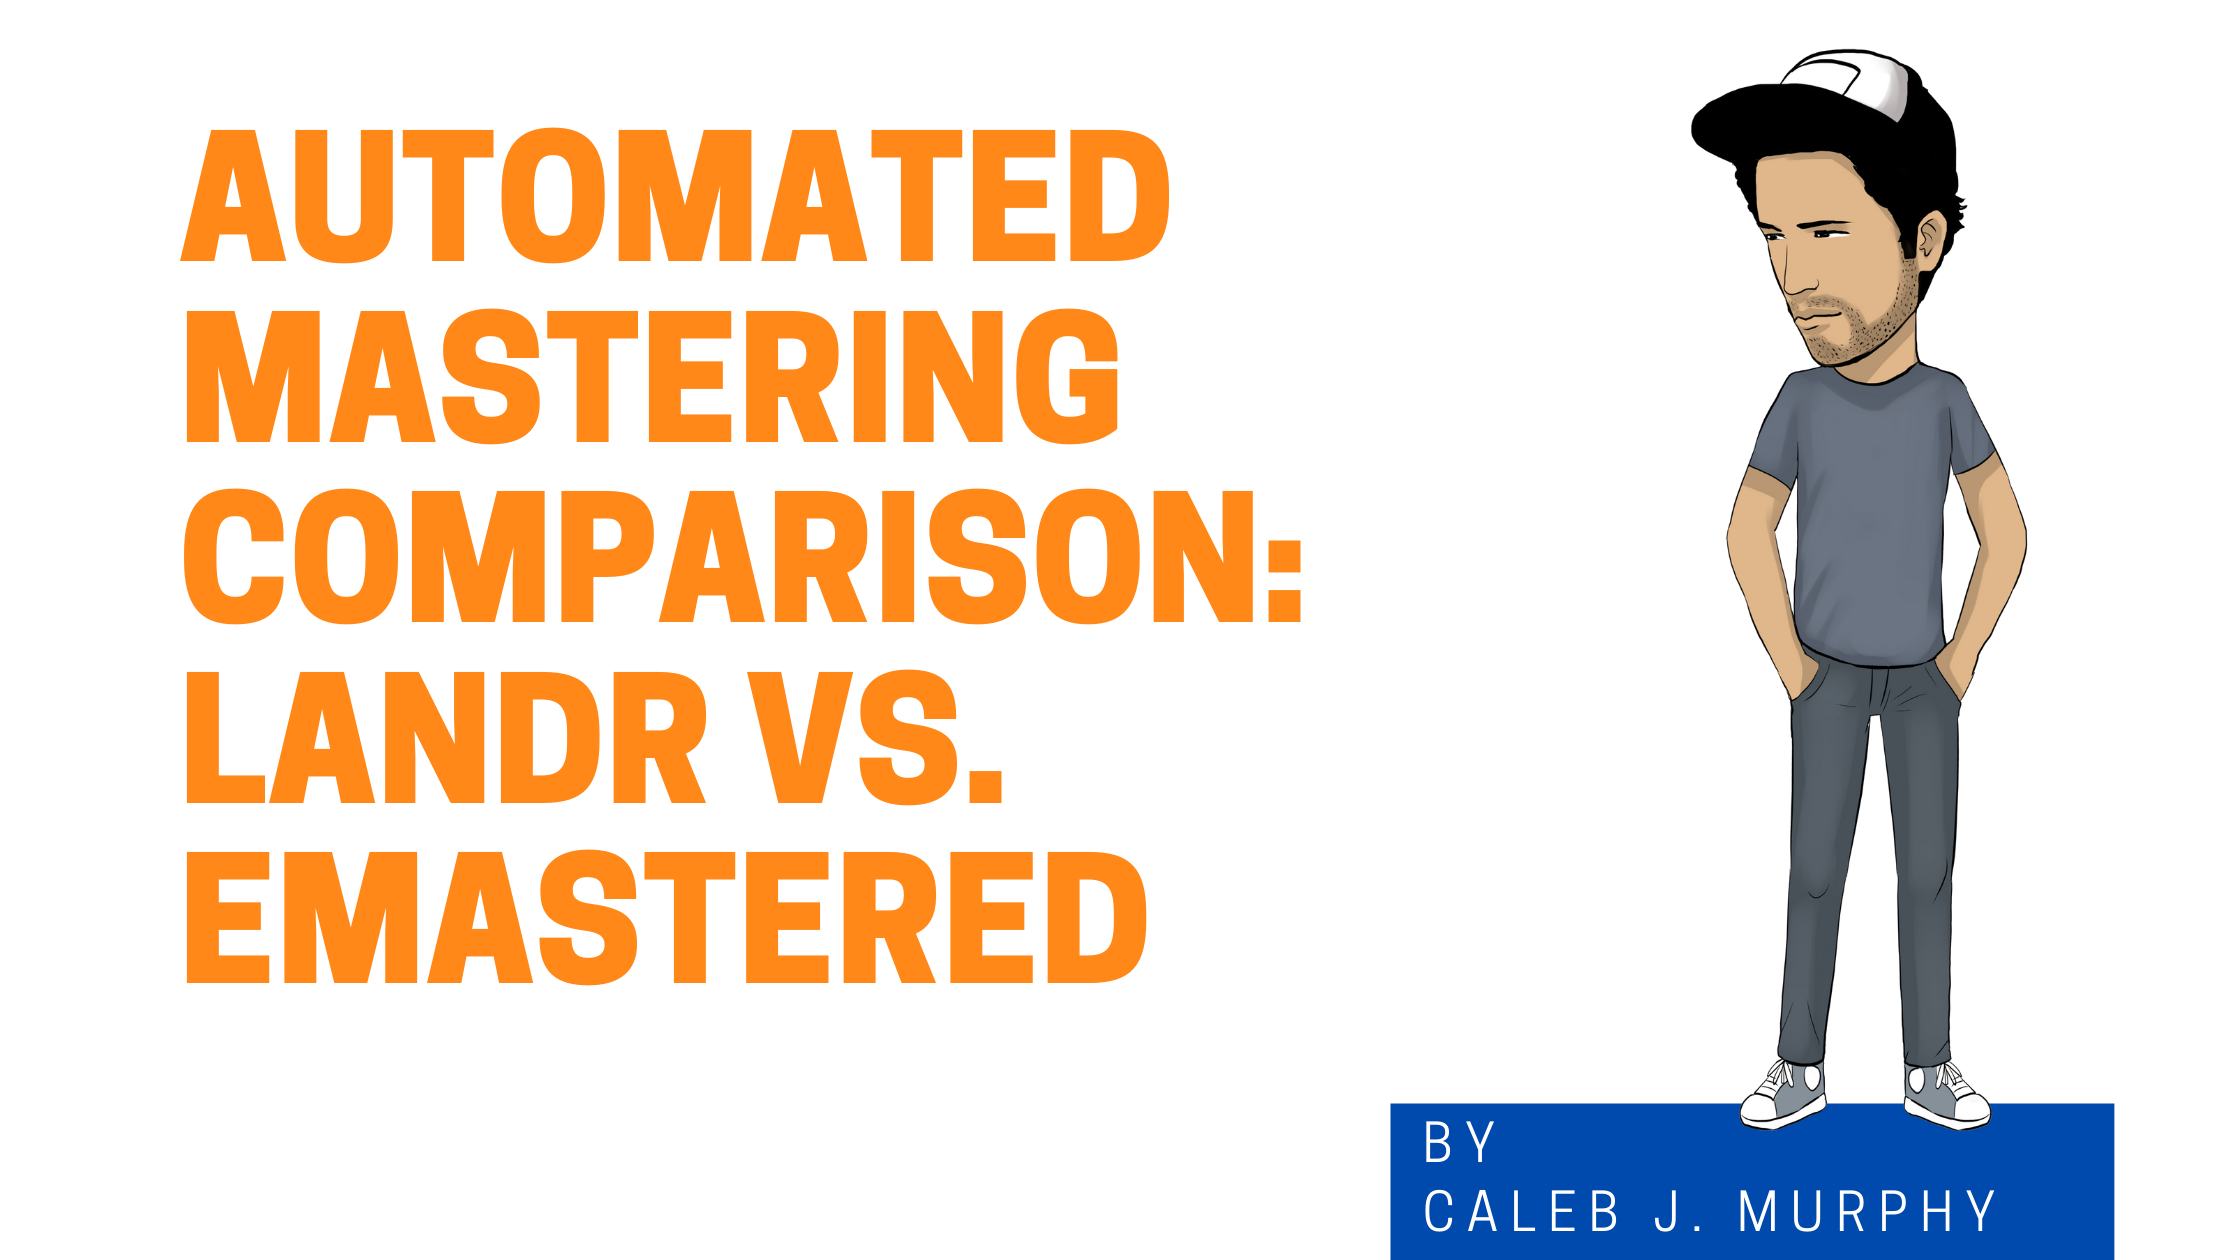 Automated Mastering Comparison: LANDR vs. eMastered graphic with cartoon of Caleb